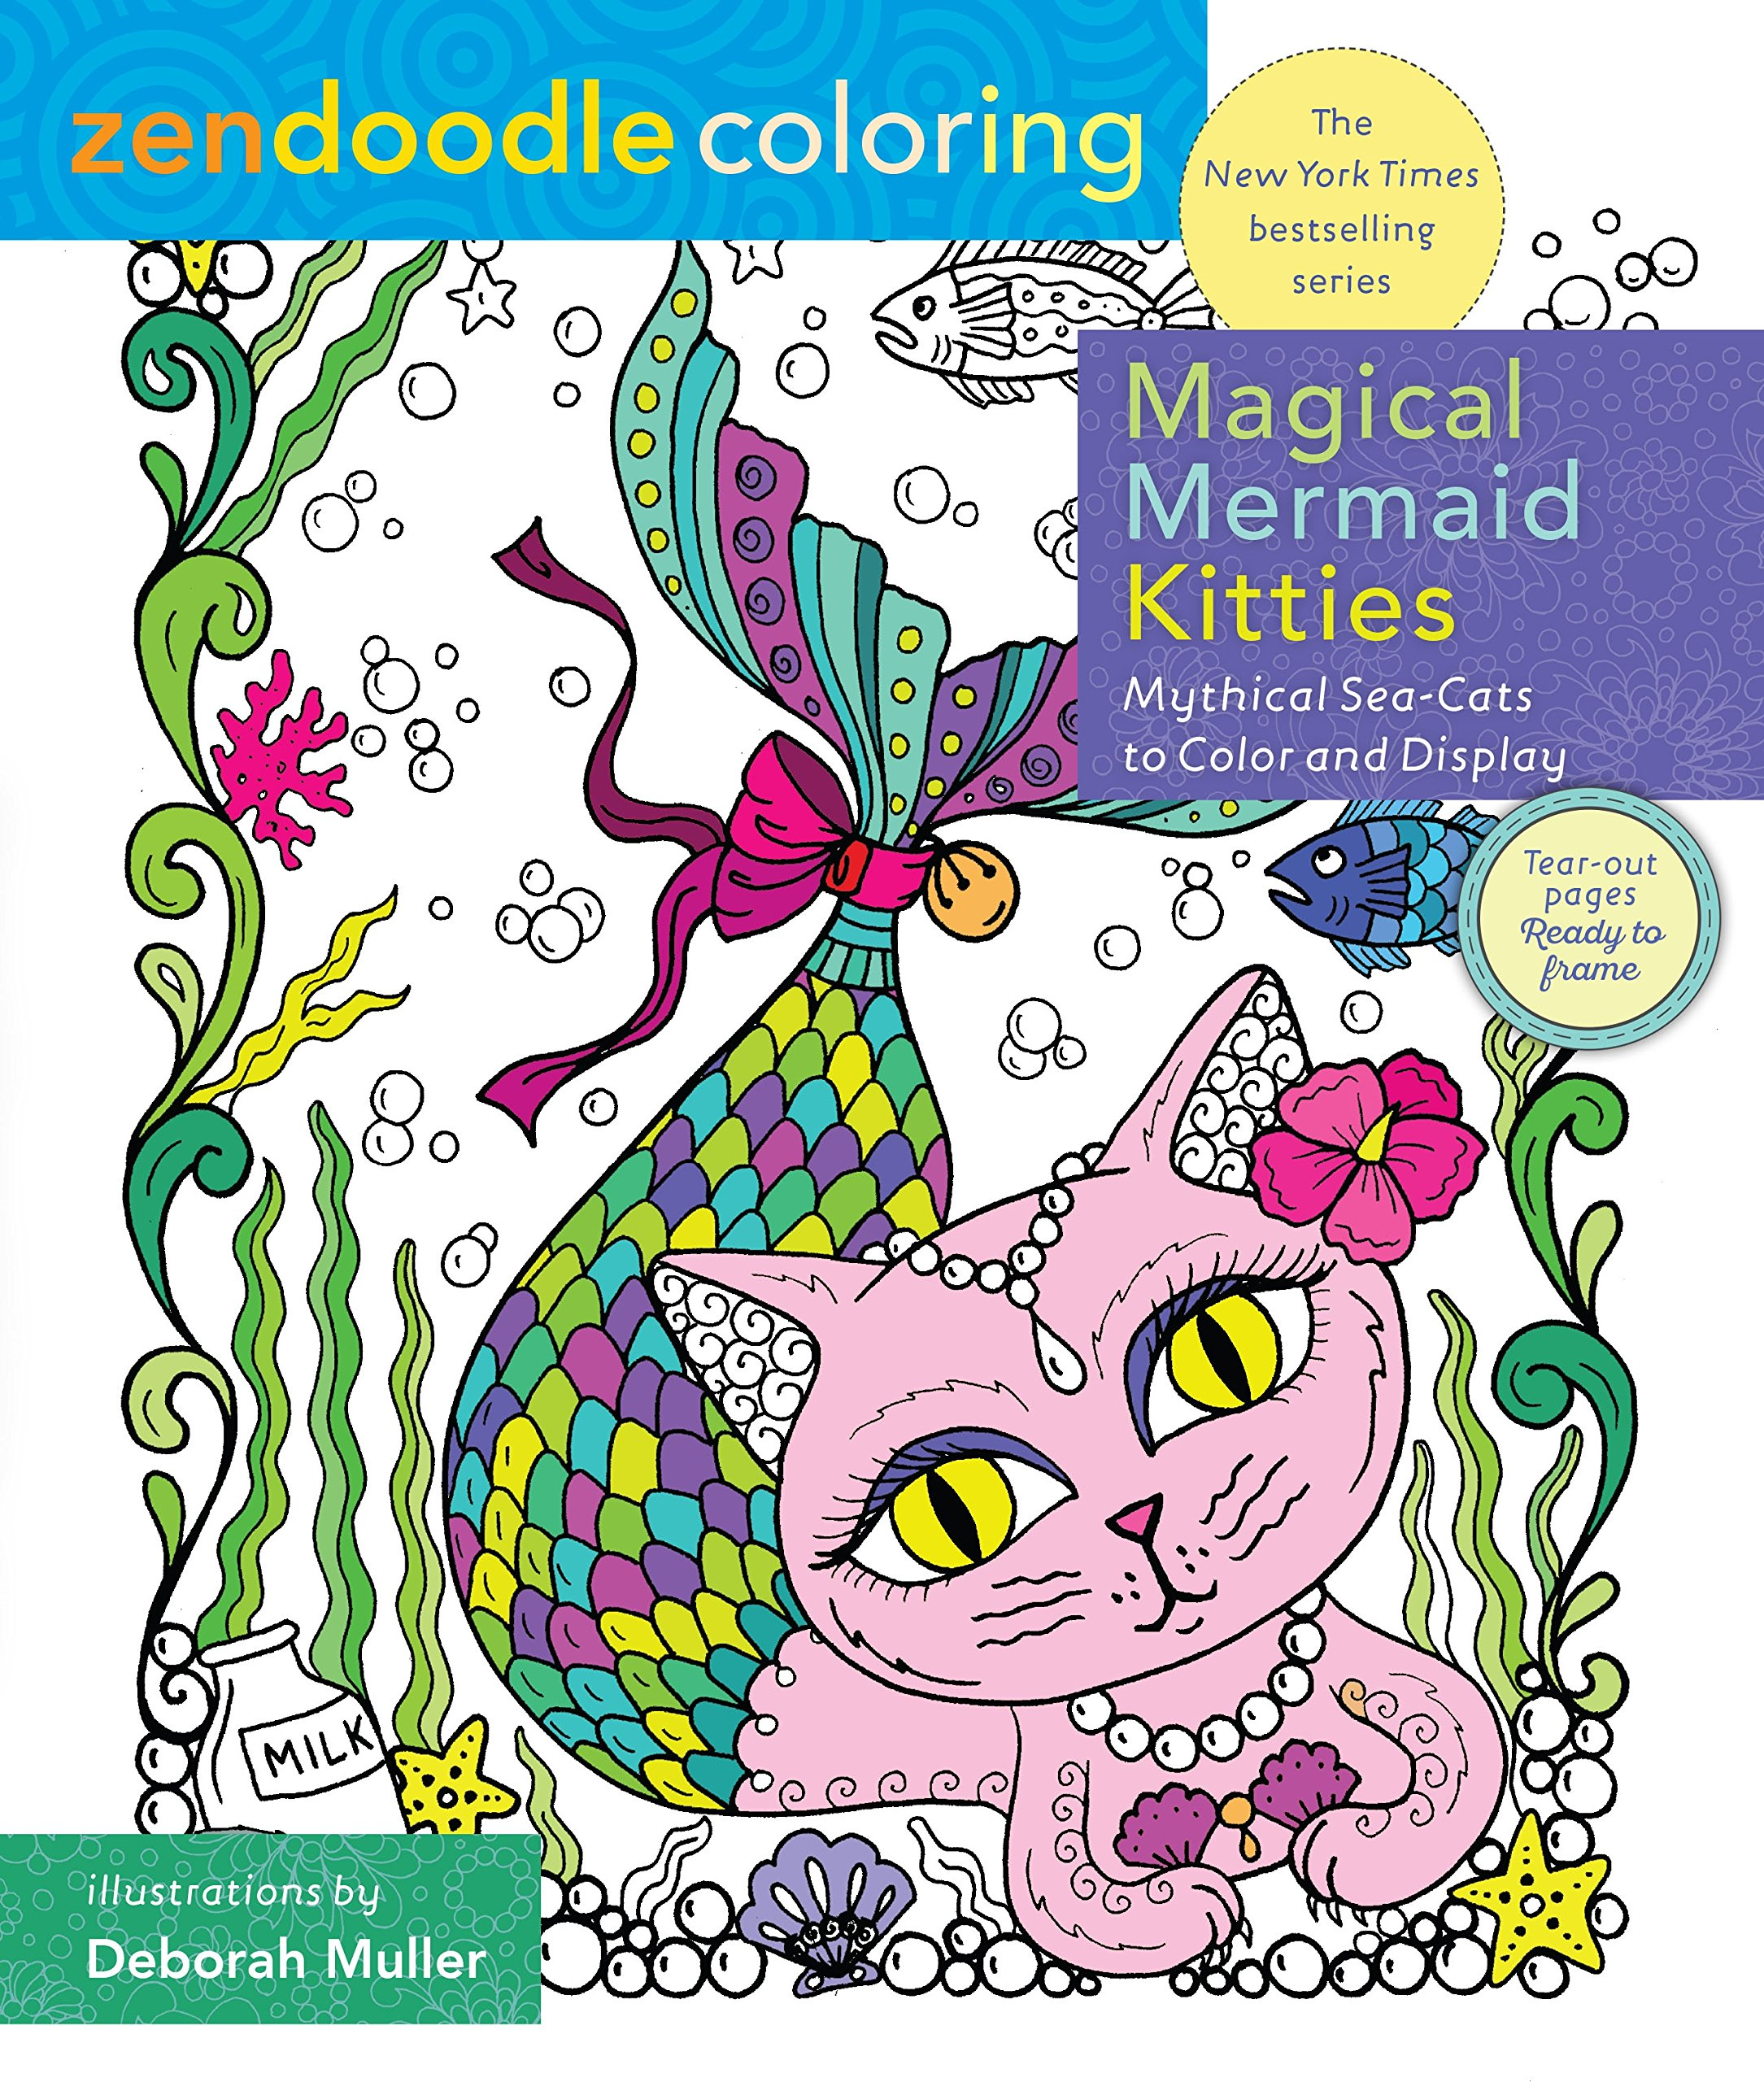 Zendoodle coloring enchanting gardens - Amazon Com Zendoodle Coloring Magical Mermaid Kitties Mythical Sea Cats To Color And Display 9781250141569 Deborah Muller Books